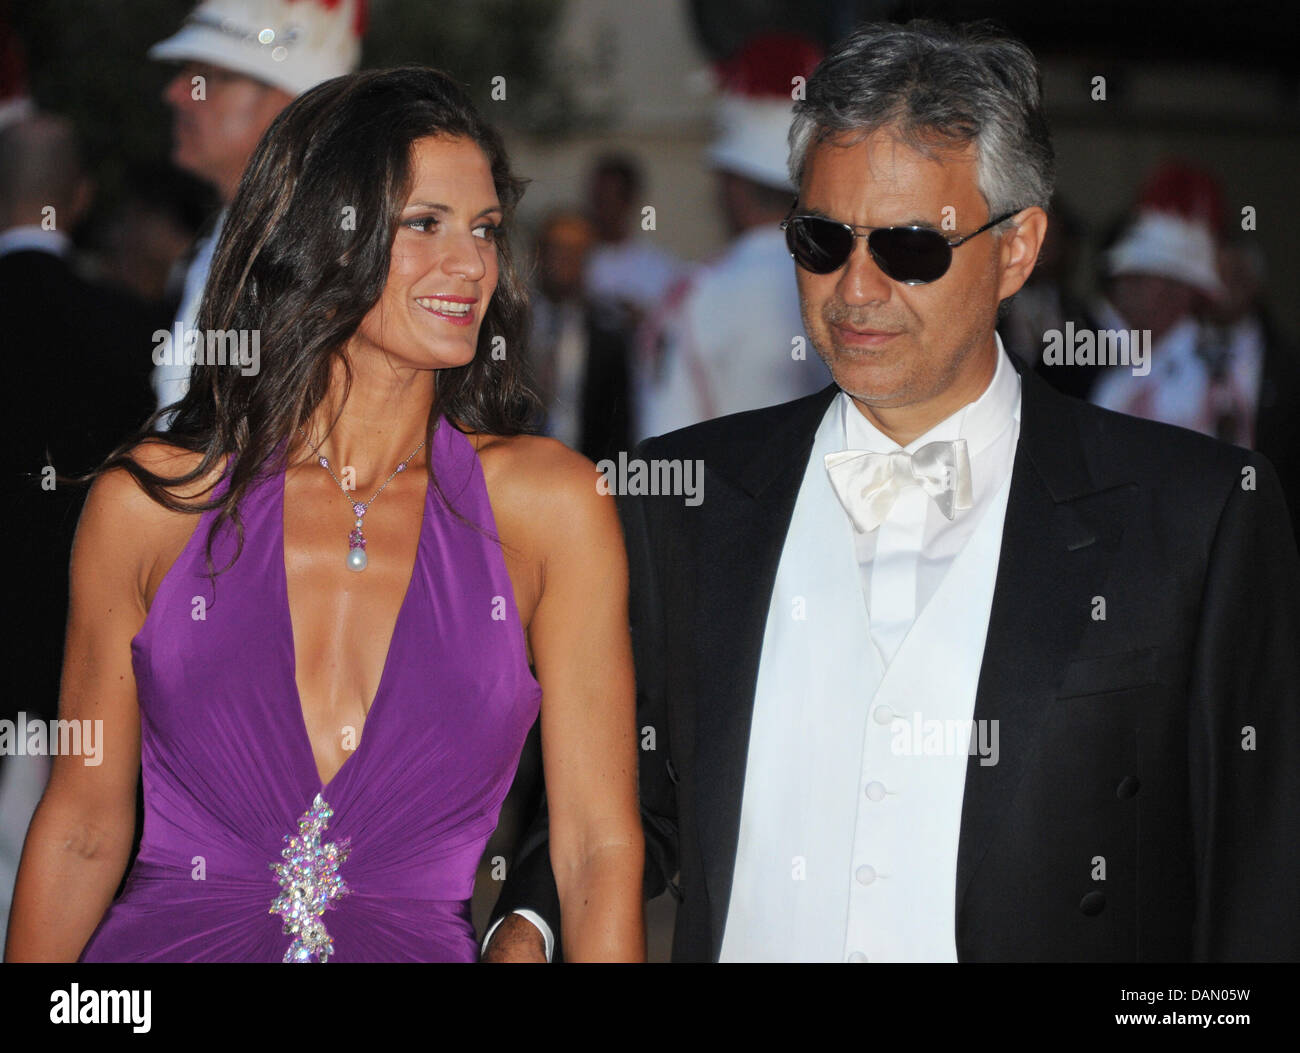 veronica bocelli and andrea bocelli stockfotos veronica bocelli and andrea bocelli bilder. Black Bedroom Furniture Sets. Home Design Ideas